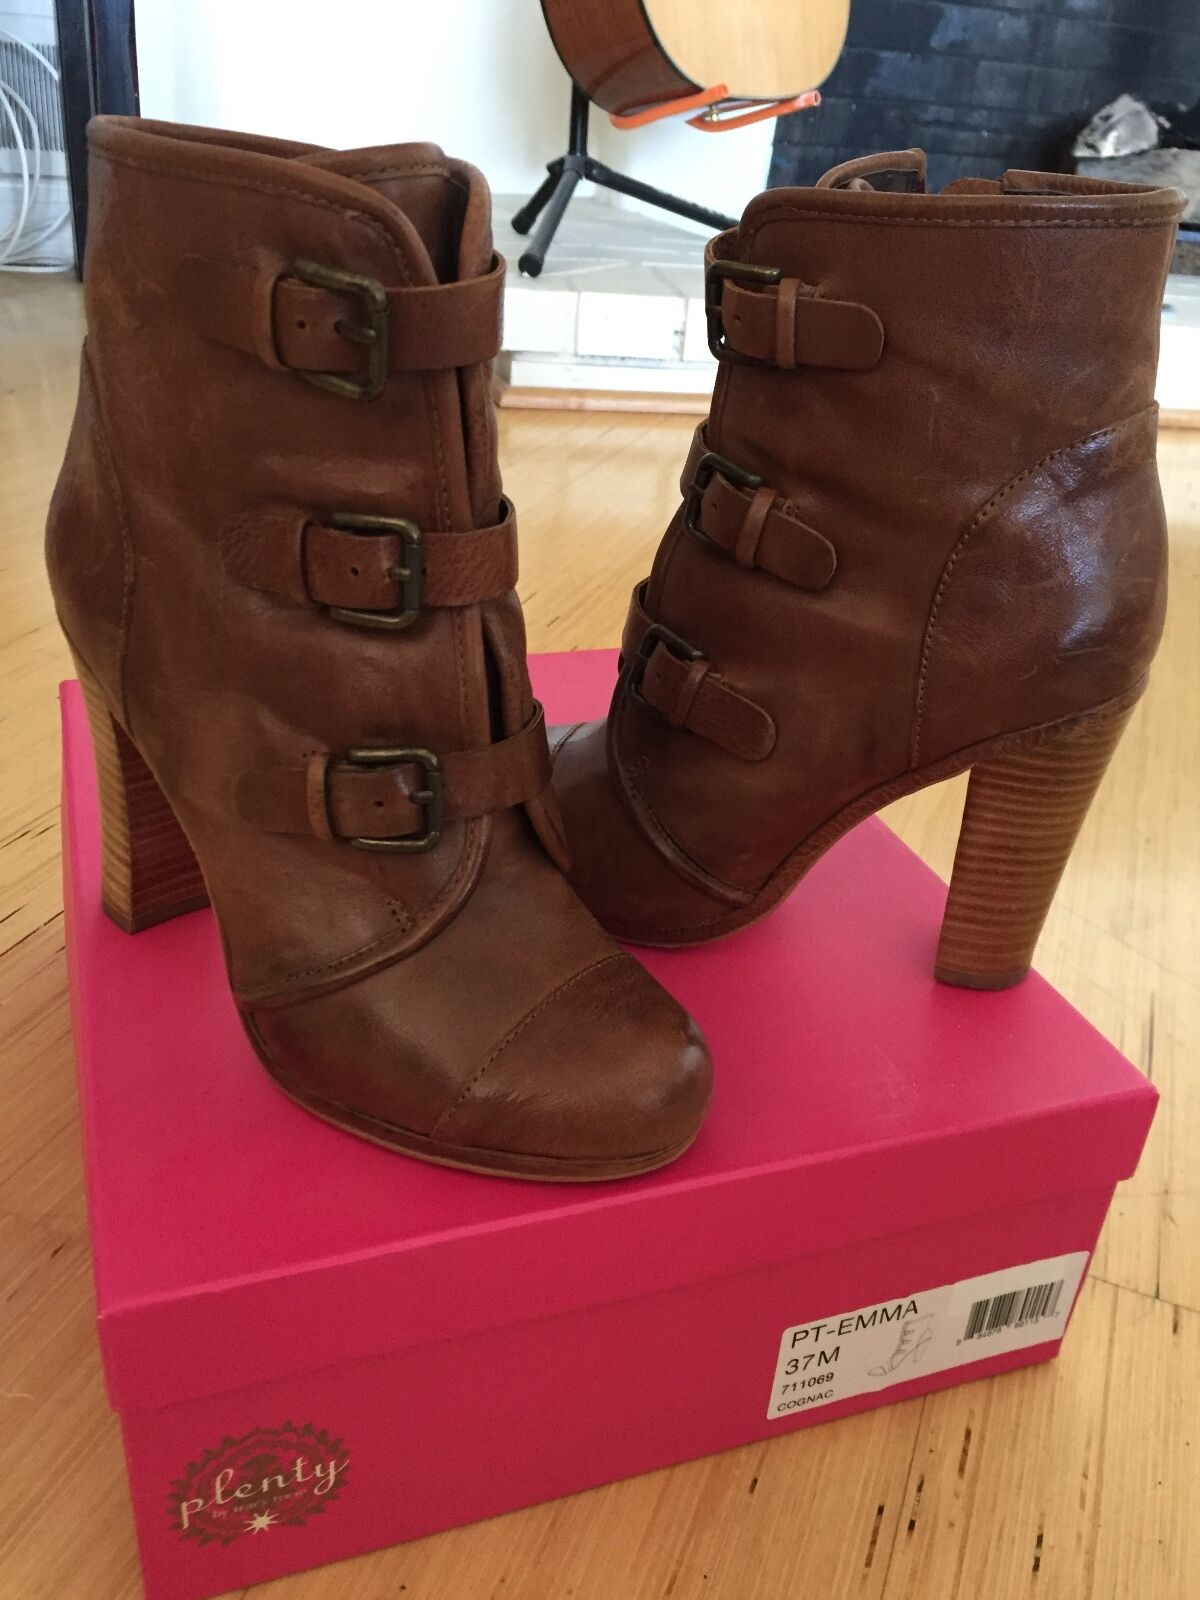 Plenty By Tracy Reese Cognac Leather Ankle Emma Boot - Size 37 (size 6.5-7)